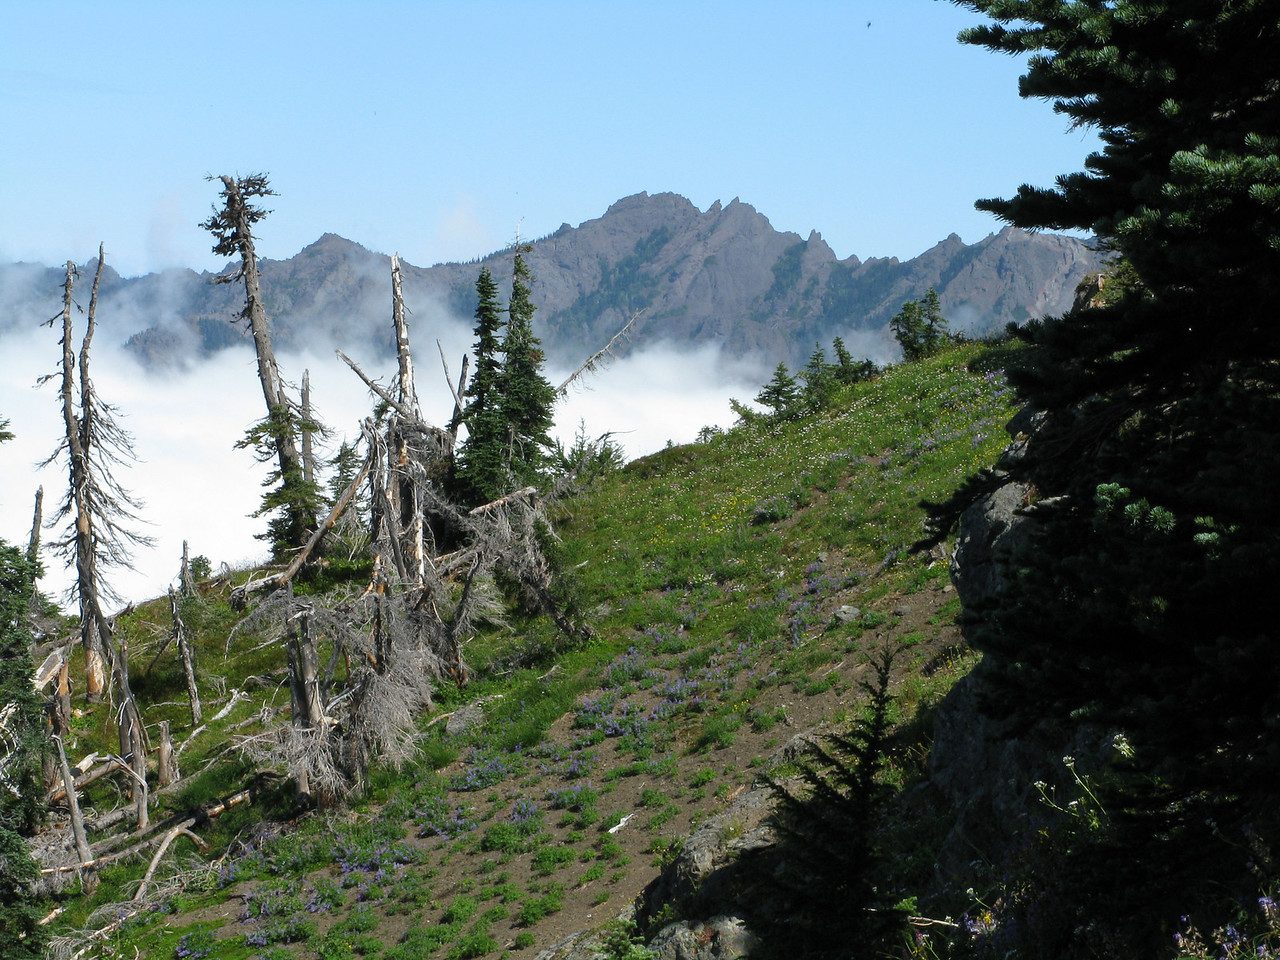 Mount Angeles in the distance.